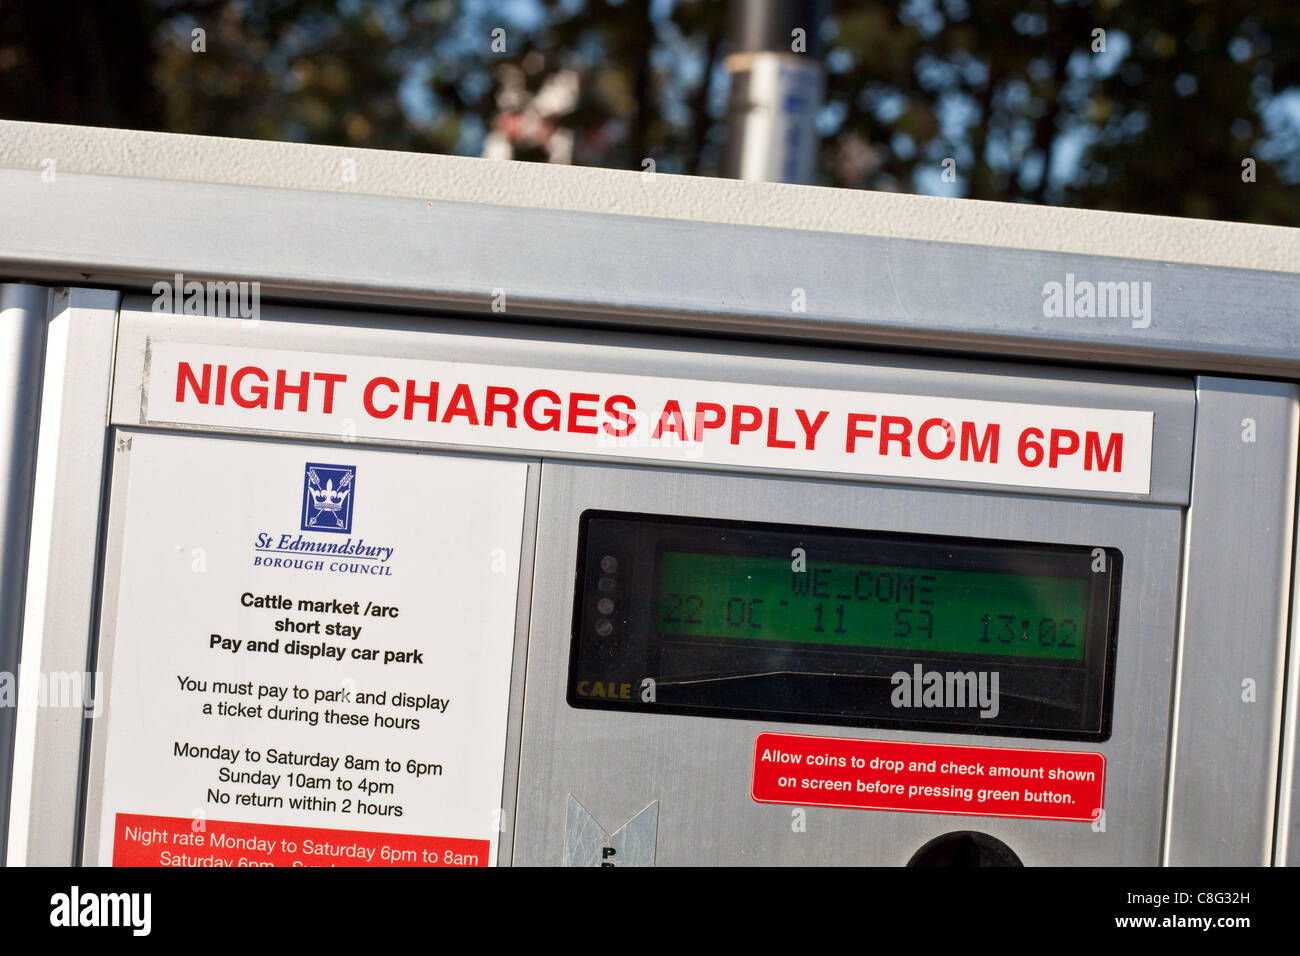 Car park pay machine in Bury St Edmunds, night charges - Stock Image